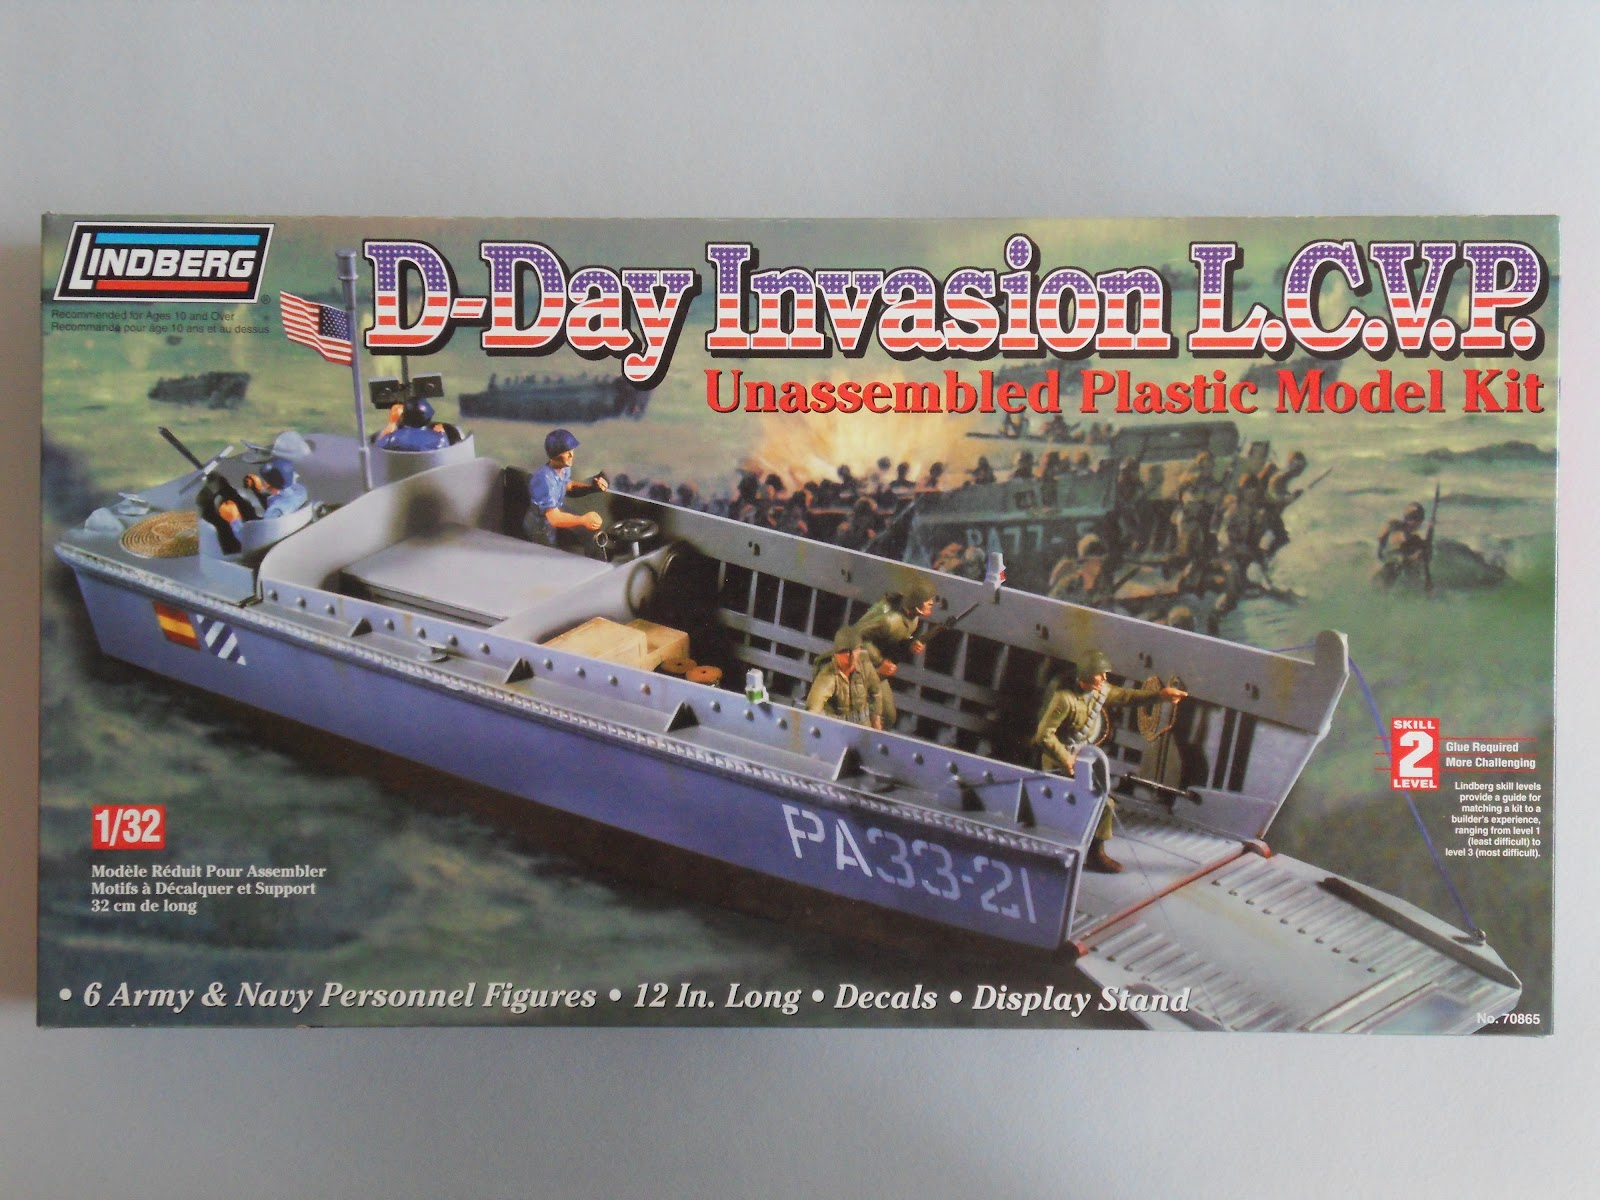 Amphibious Warfare: What's in the box? LCVP, Lindberg, 1/32